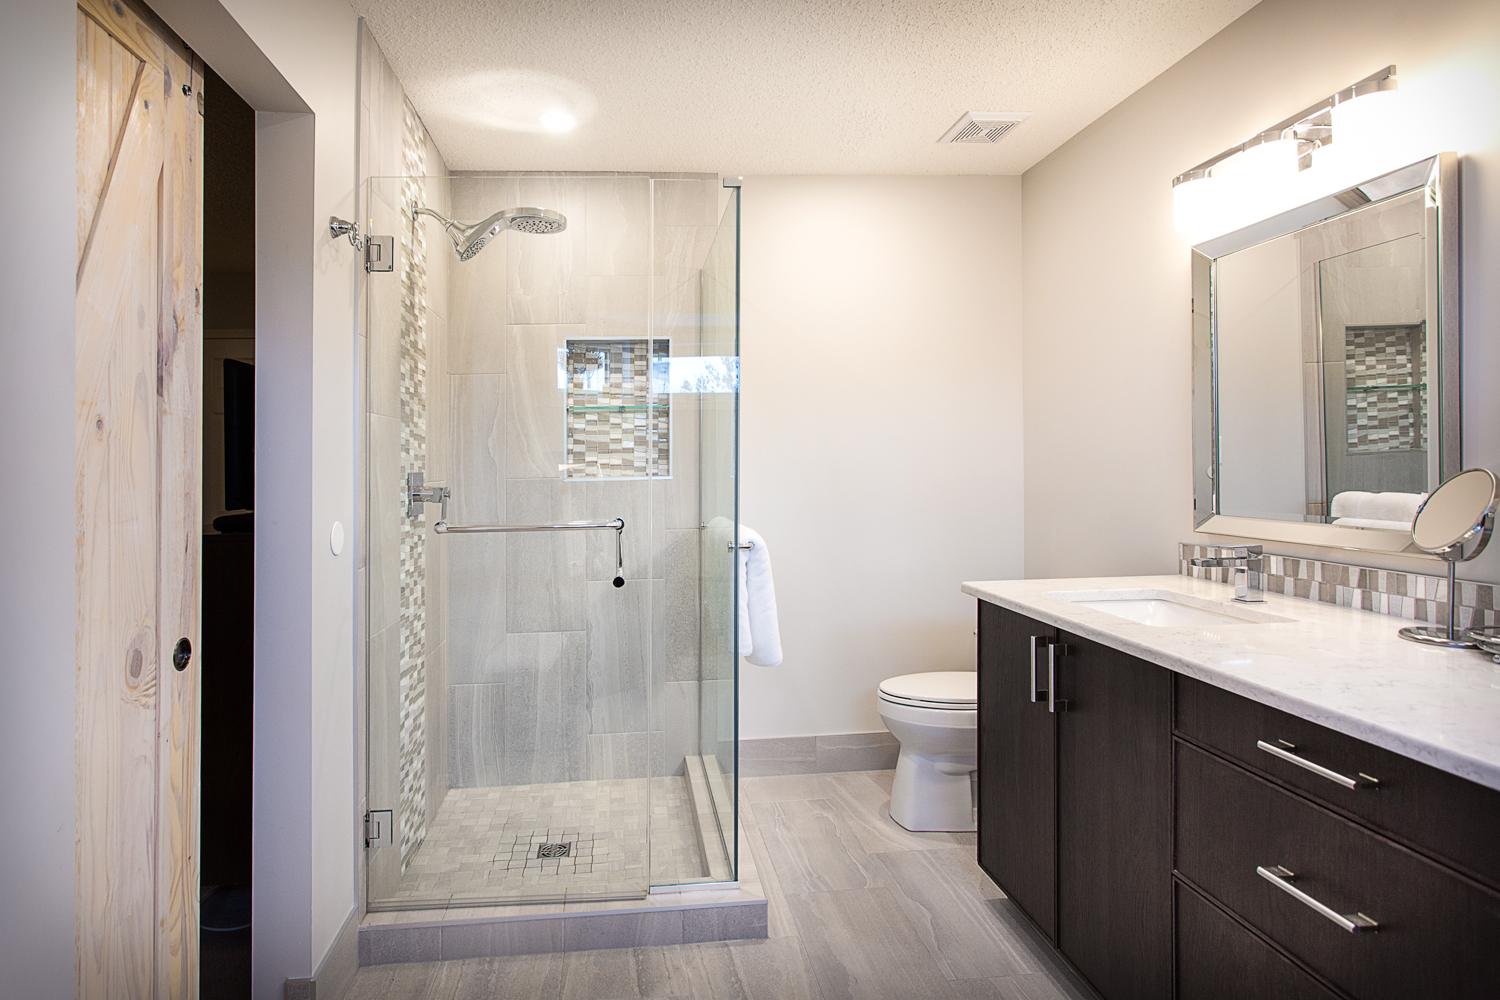 4 Design Concepts To Consider When Planning Your Edmonton Bathroom Renovation Renovationfind Blog